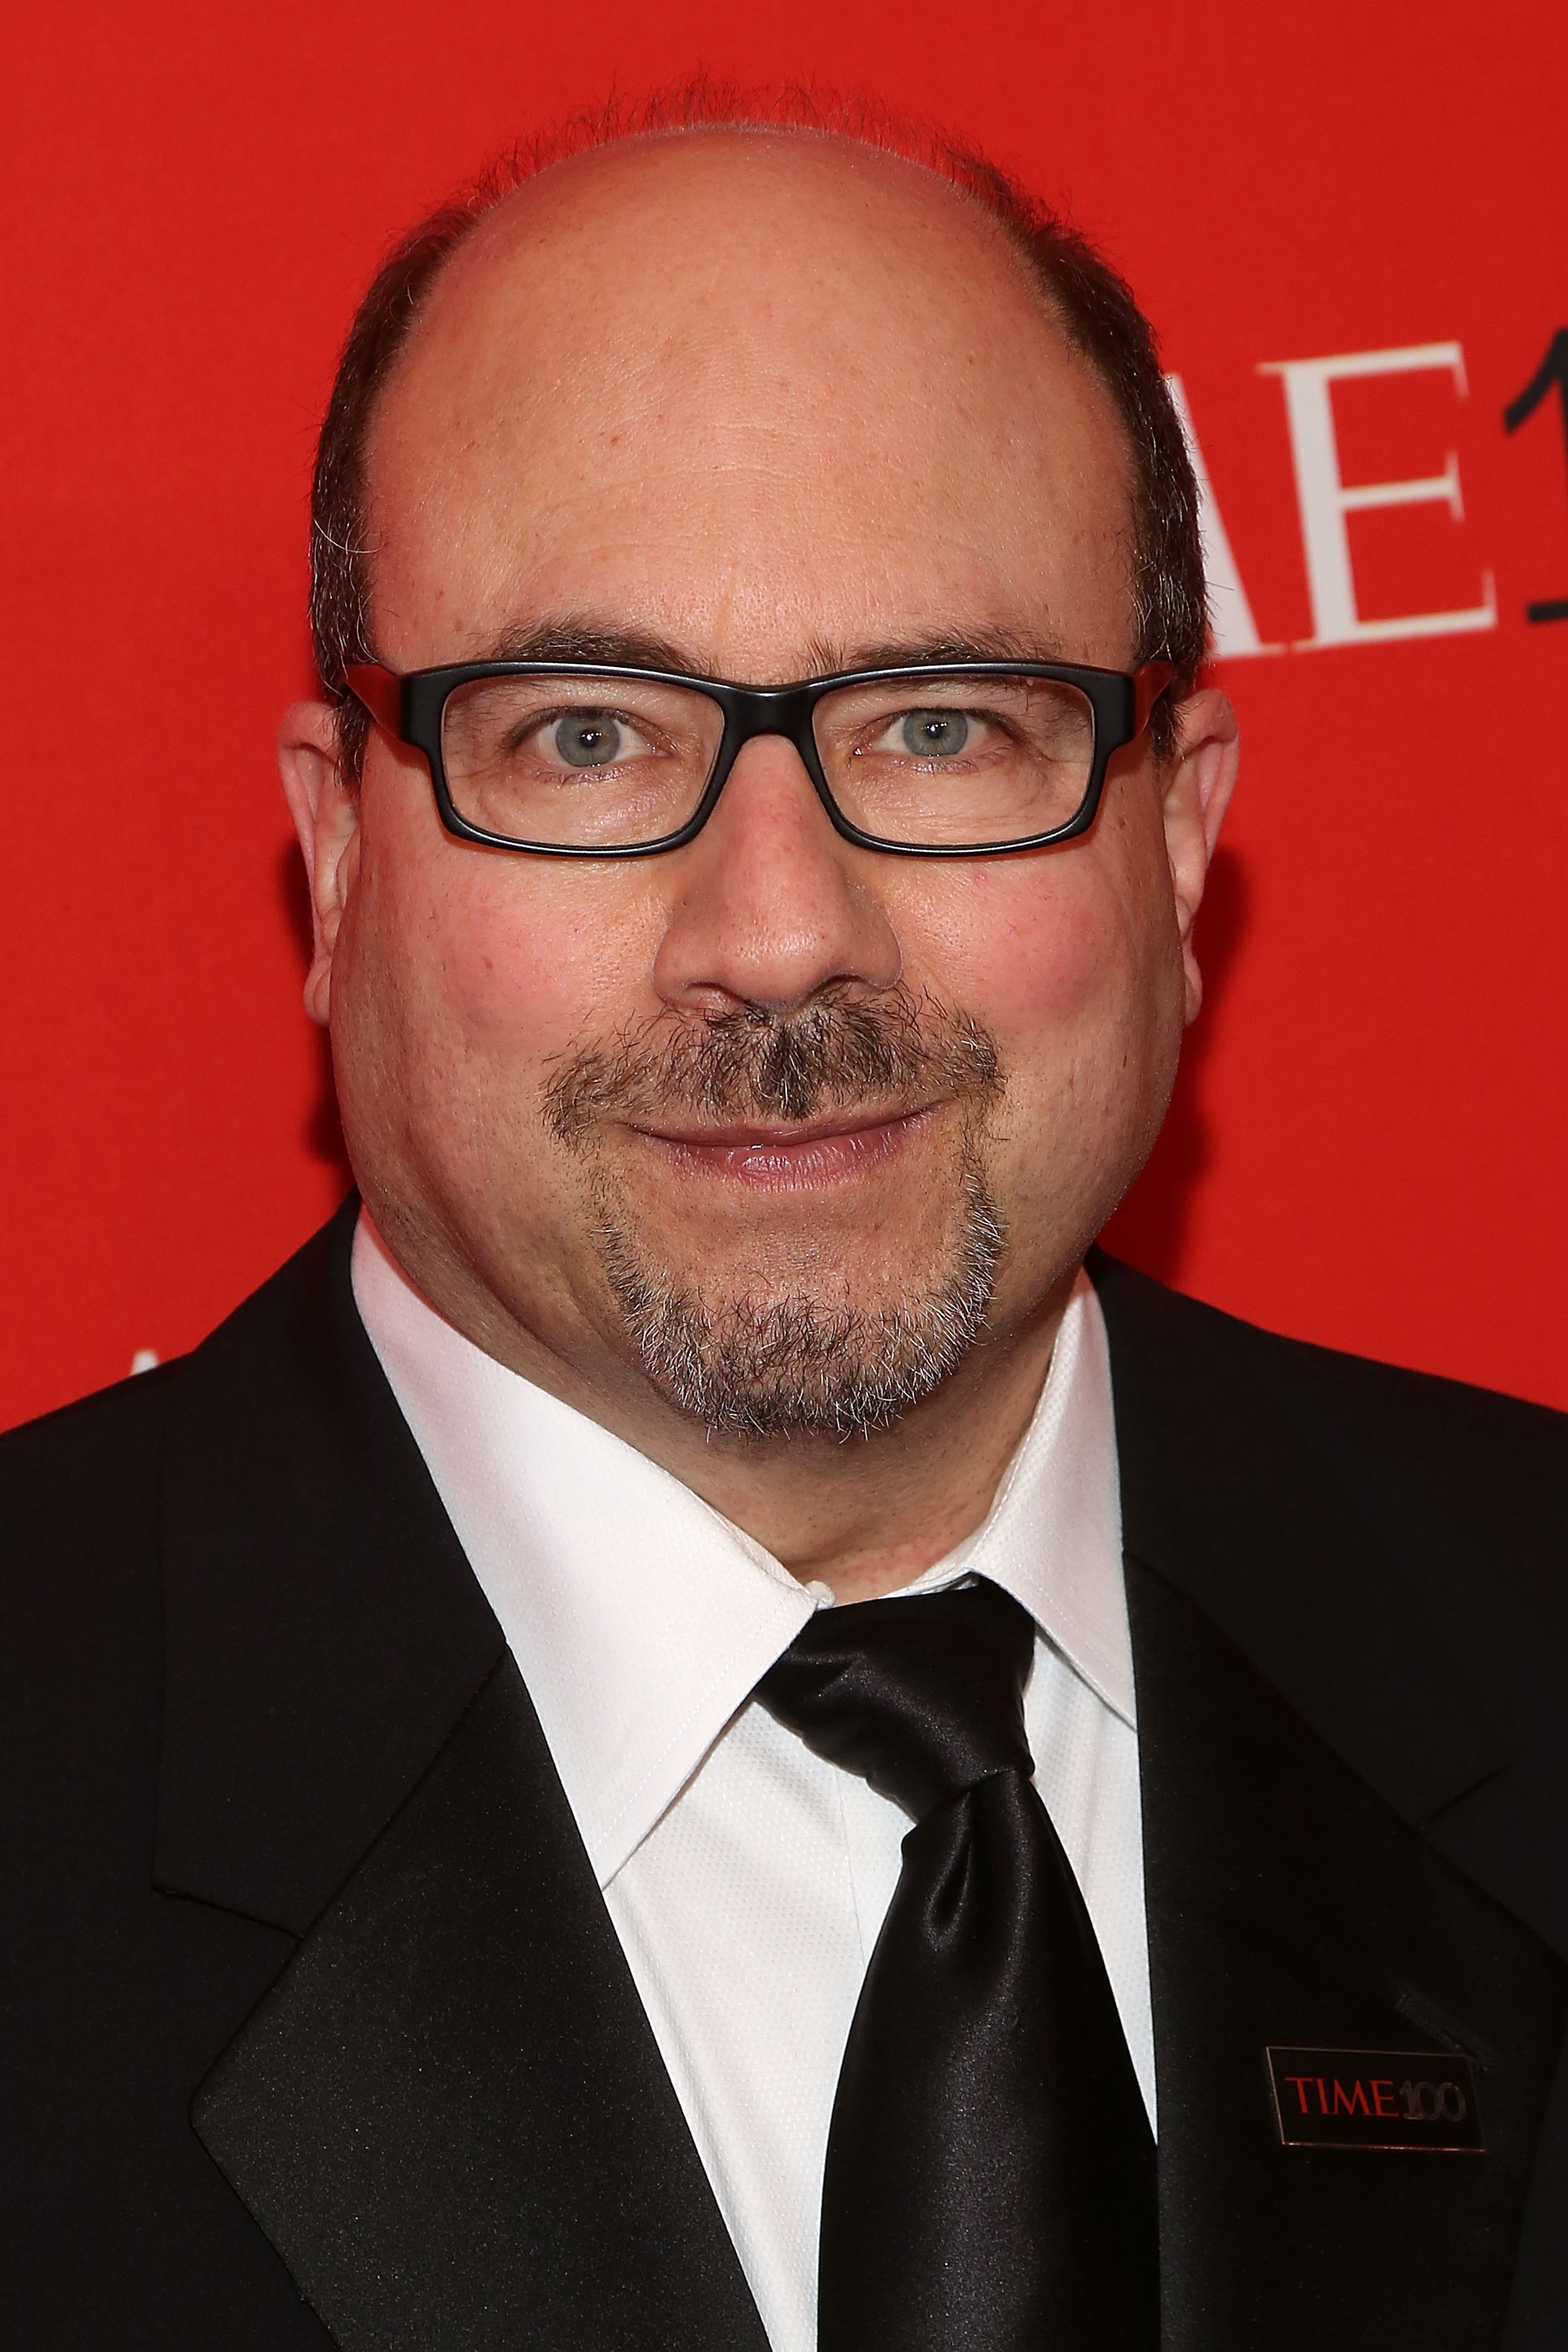 Craig Newmark at the 2015 TIME 100 Gala in New York City on April 21, 2015.